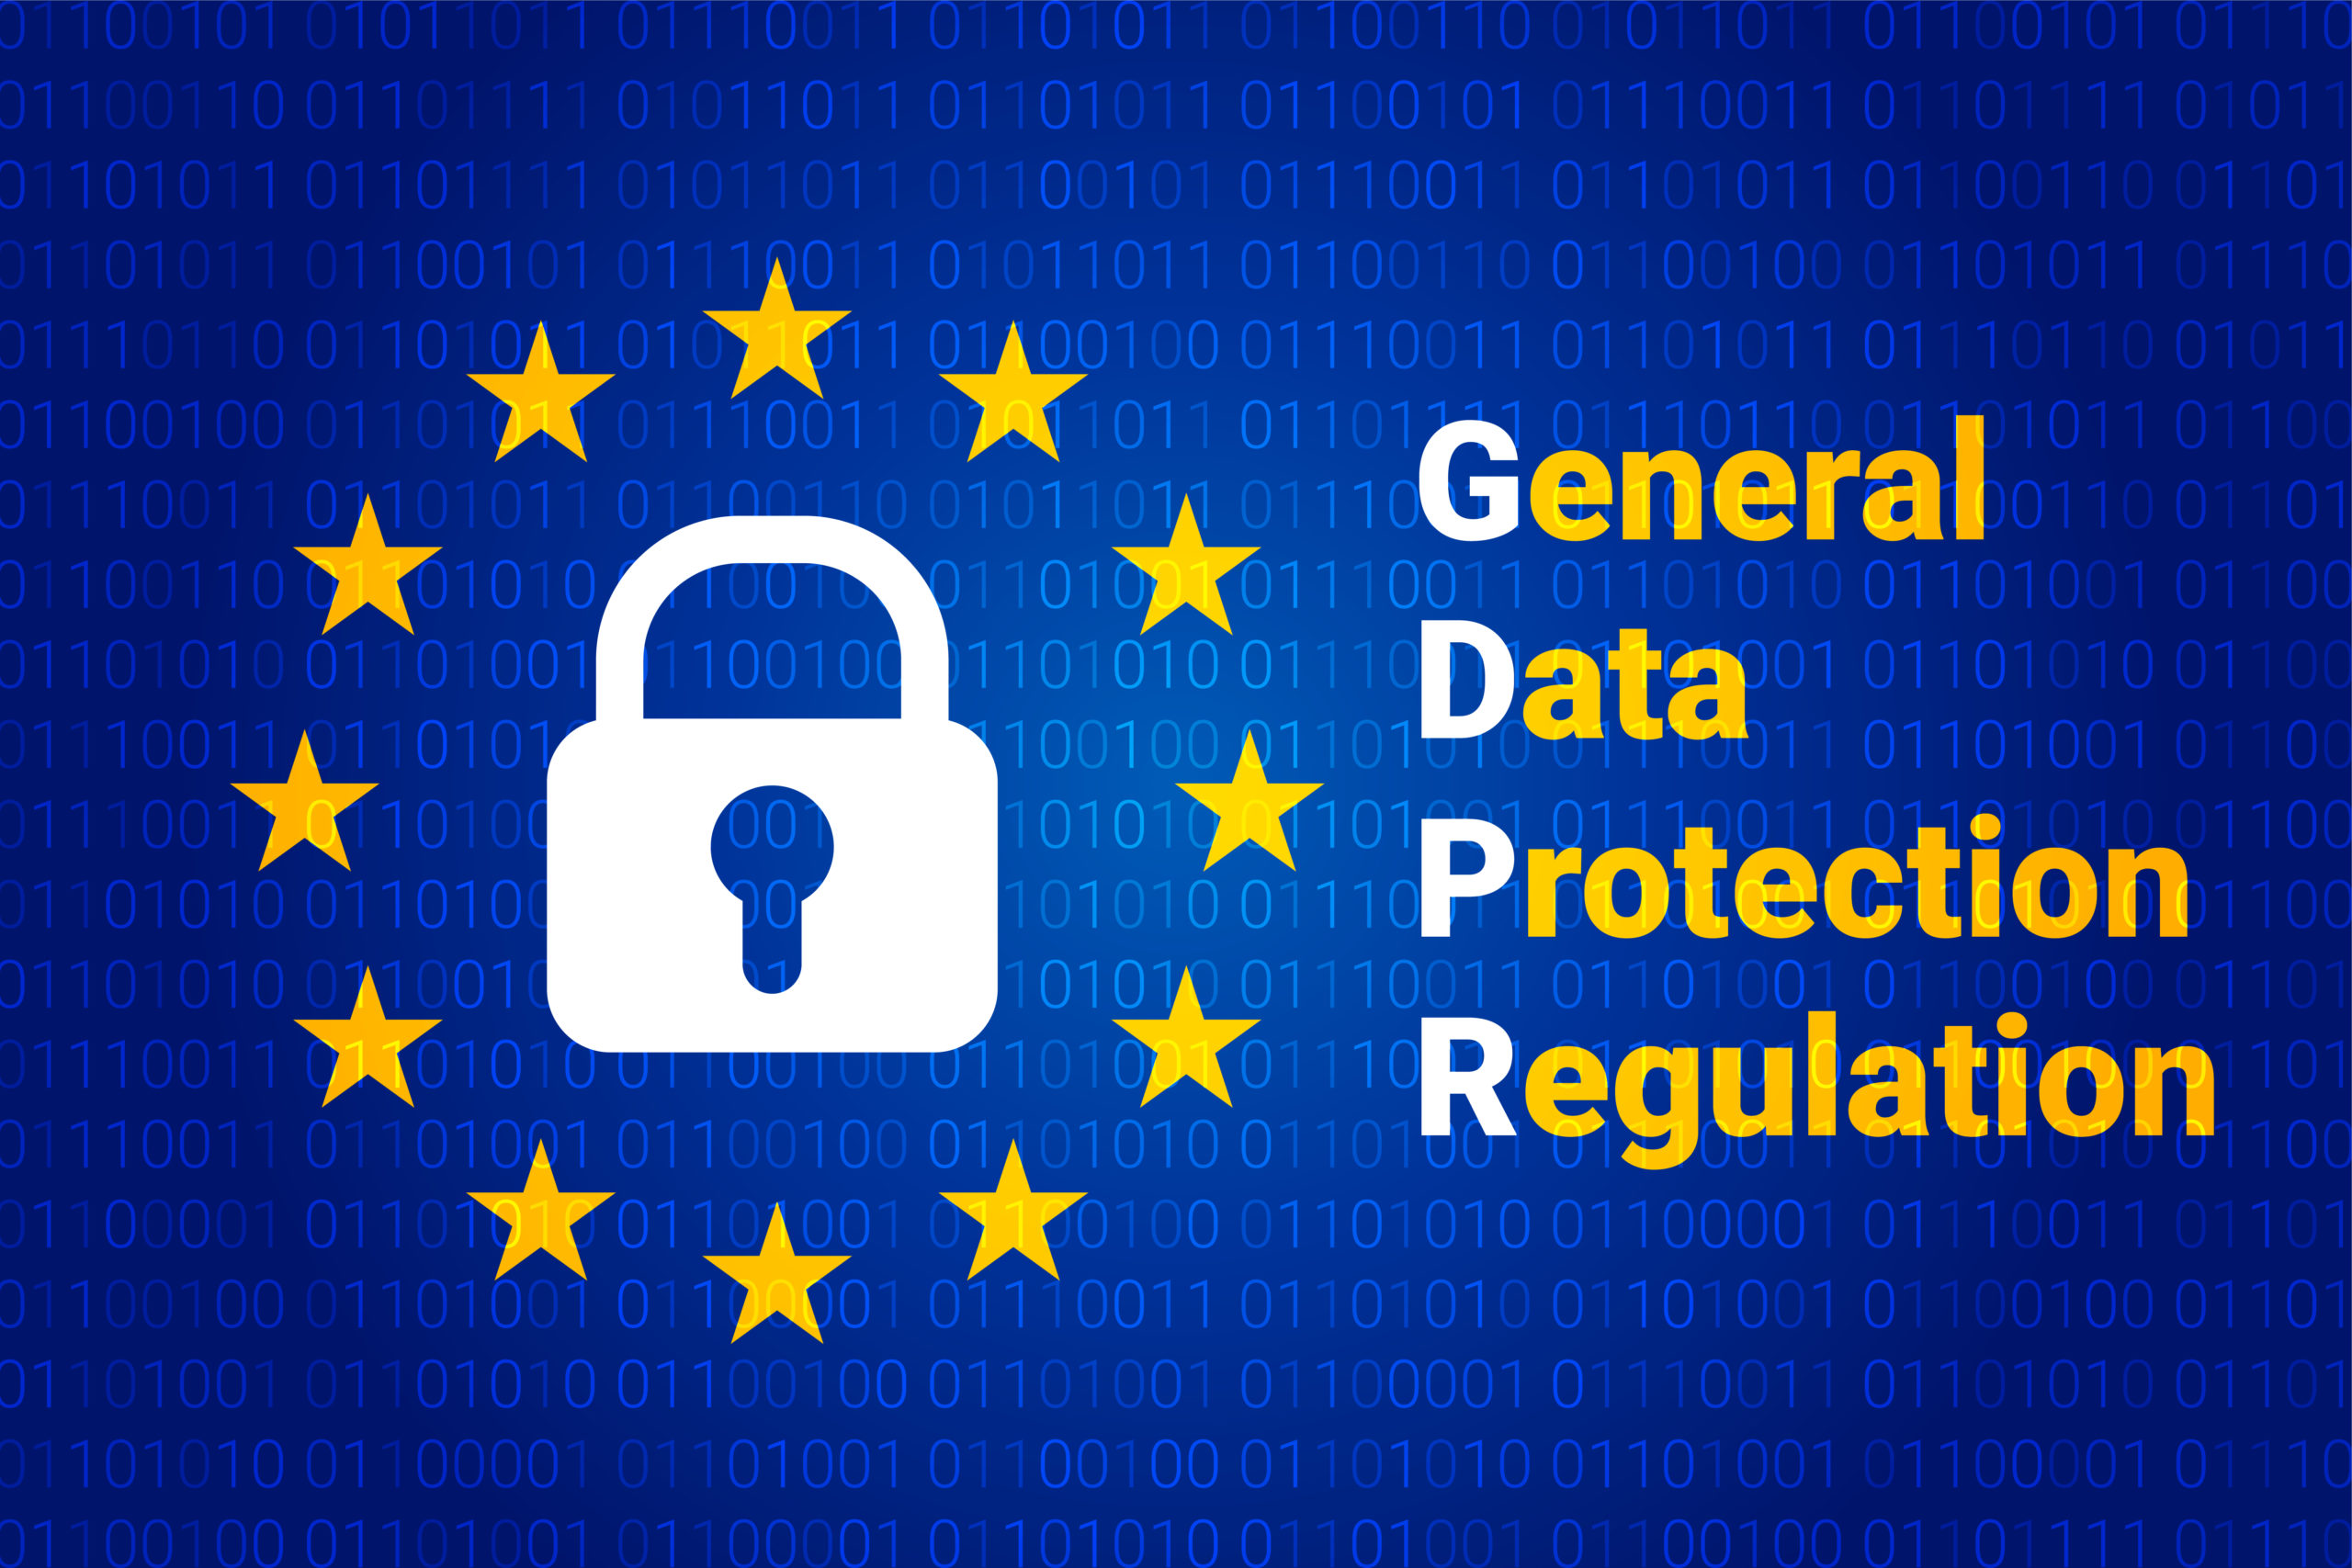 Seven tips for compliance with the General Data Protection Regulation (GDPR)